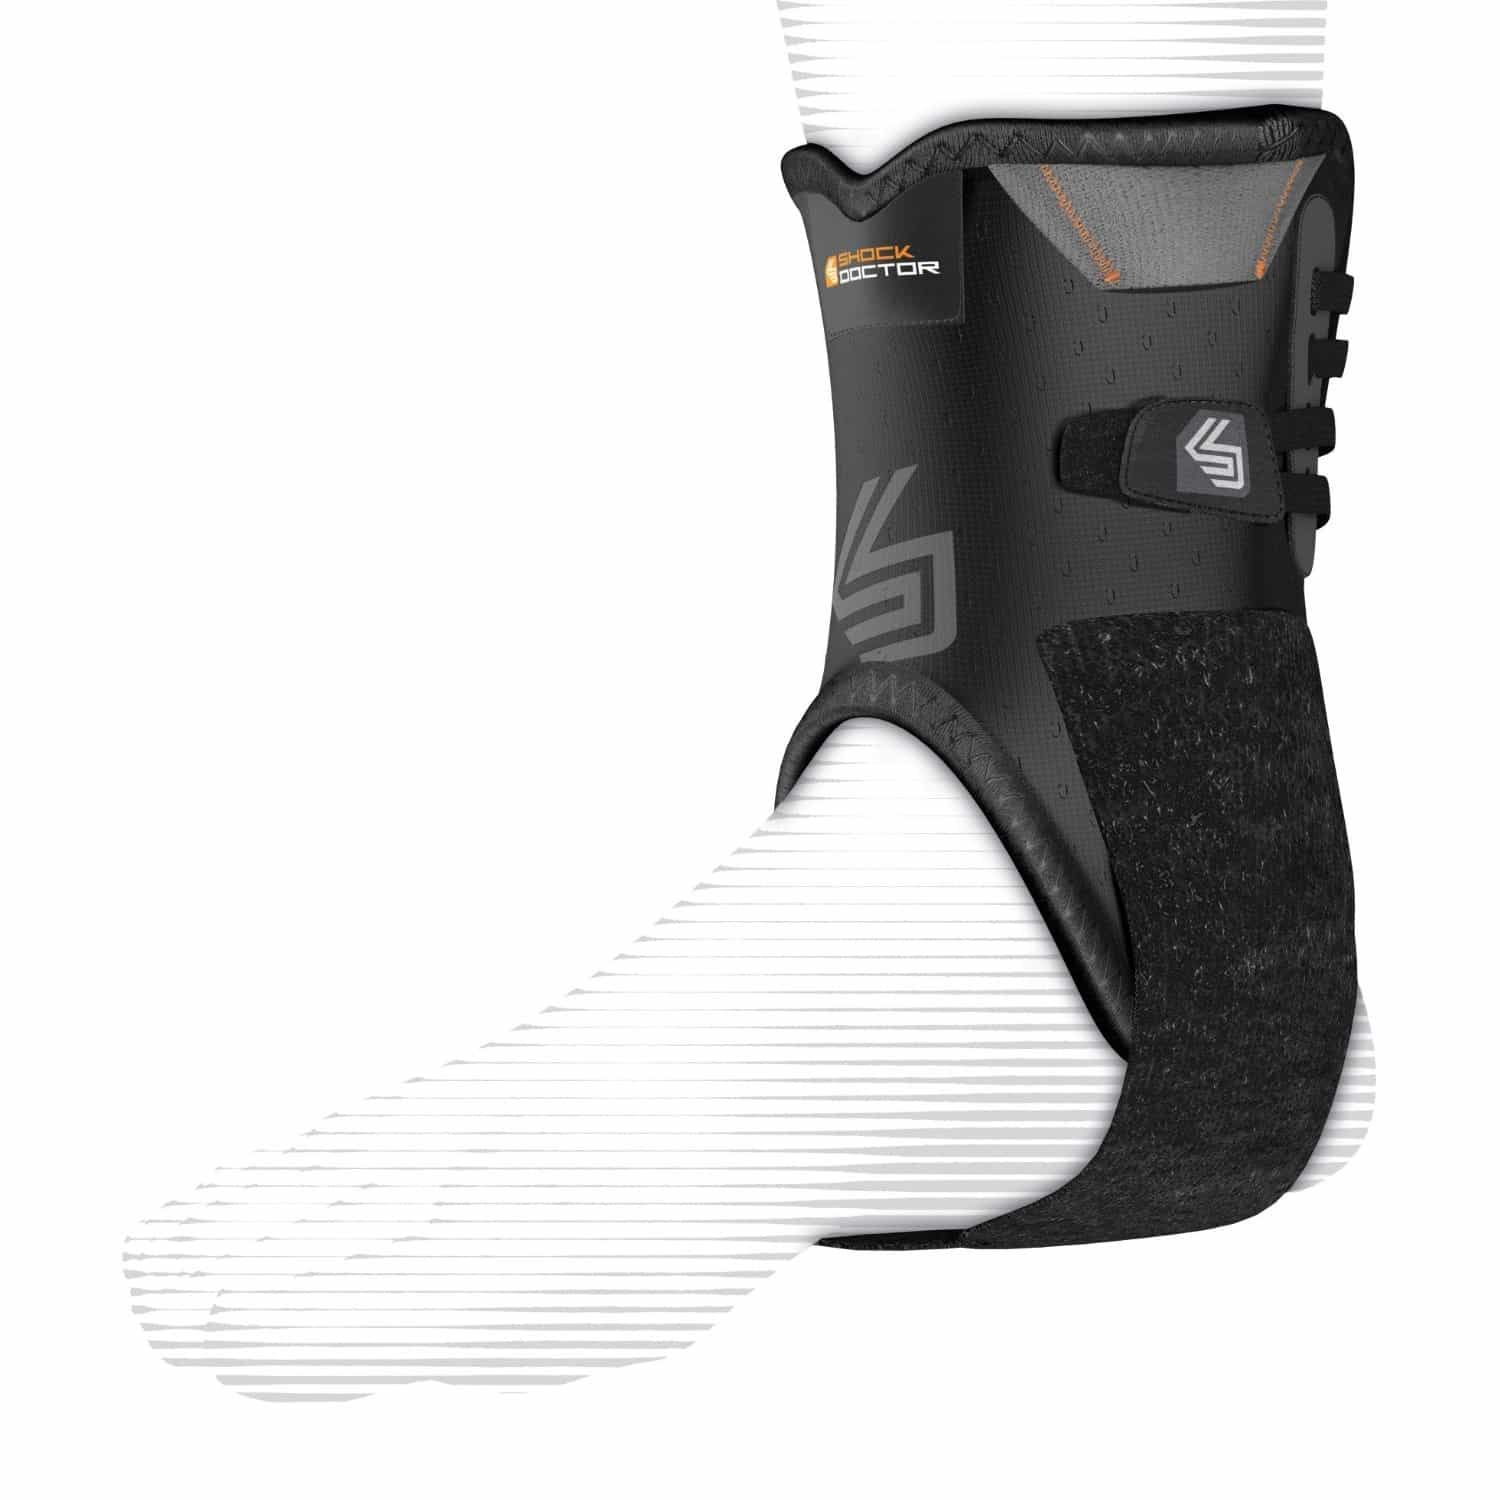 Ankle Stabilizer with Support Stays